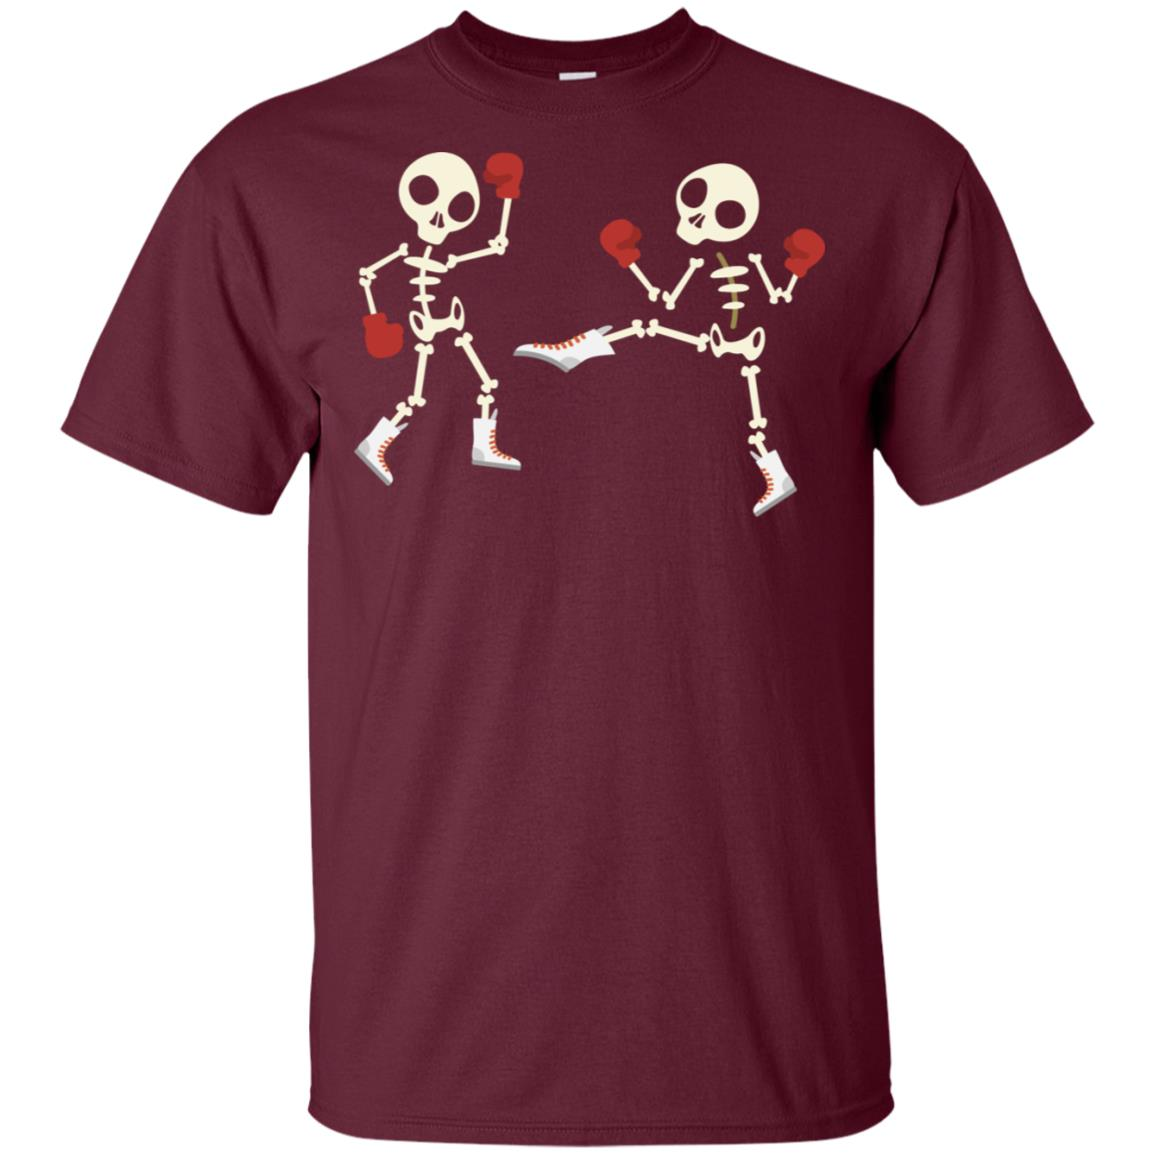 Cute Bone Kickbox – For Cool Men And Women With Humors Unisex Short Sleeve